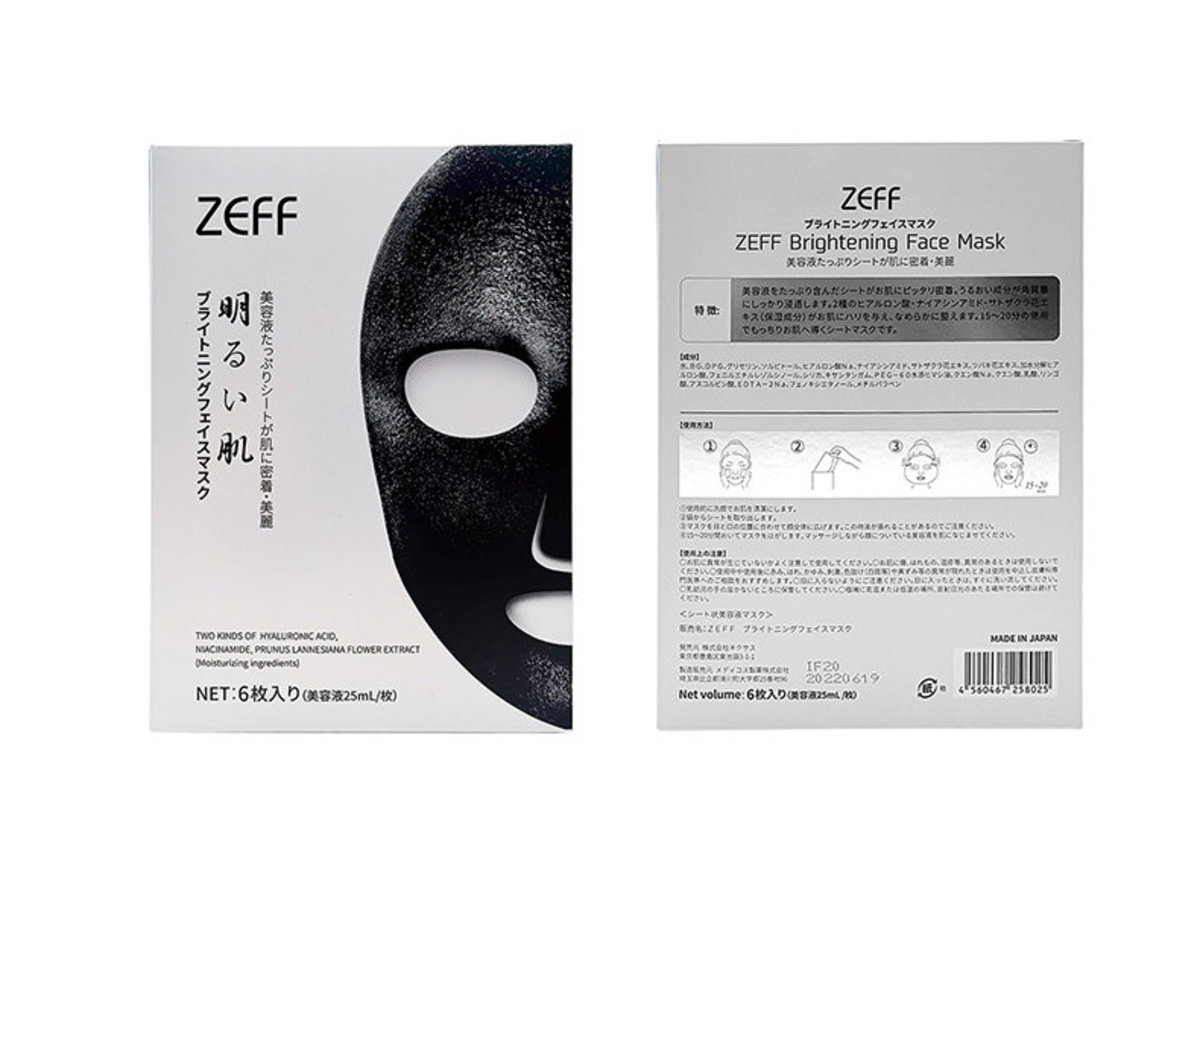 ZEFF Brightening Face Mask 6pcs 【Parallel Import Product】